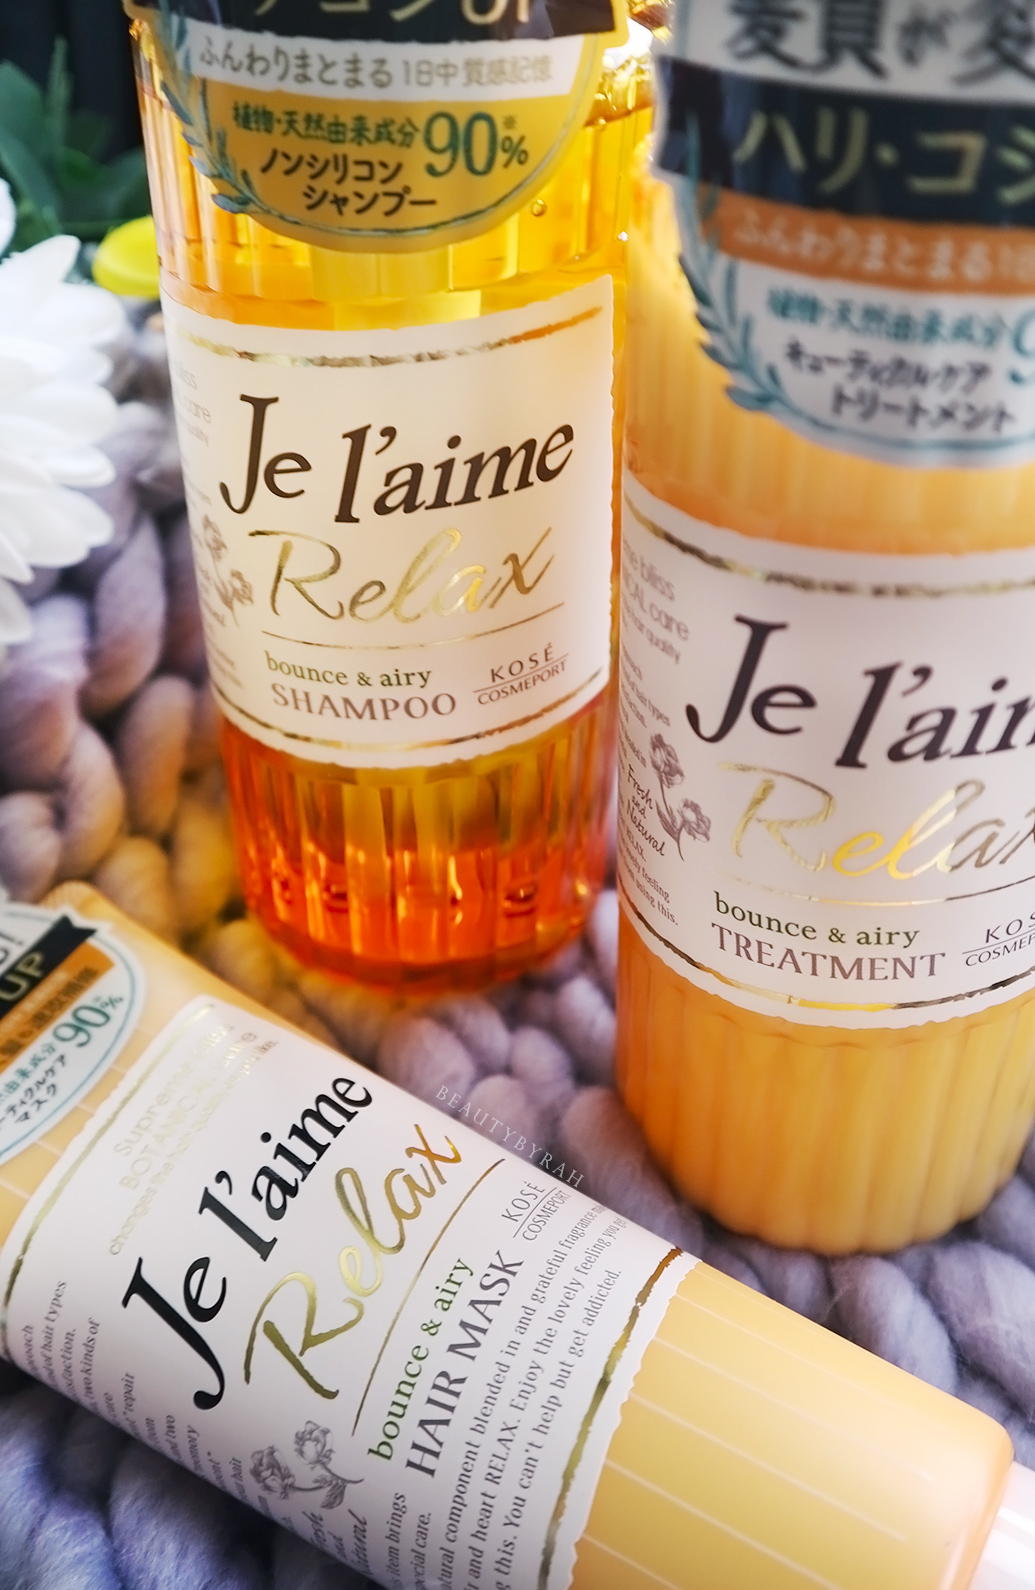 Je L'aime Relax Bounce and Airy Shampoo, treatment and hair mask review